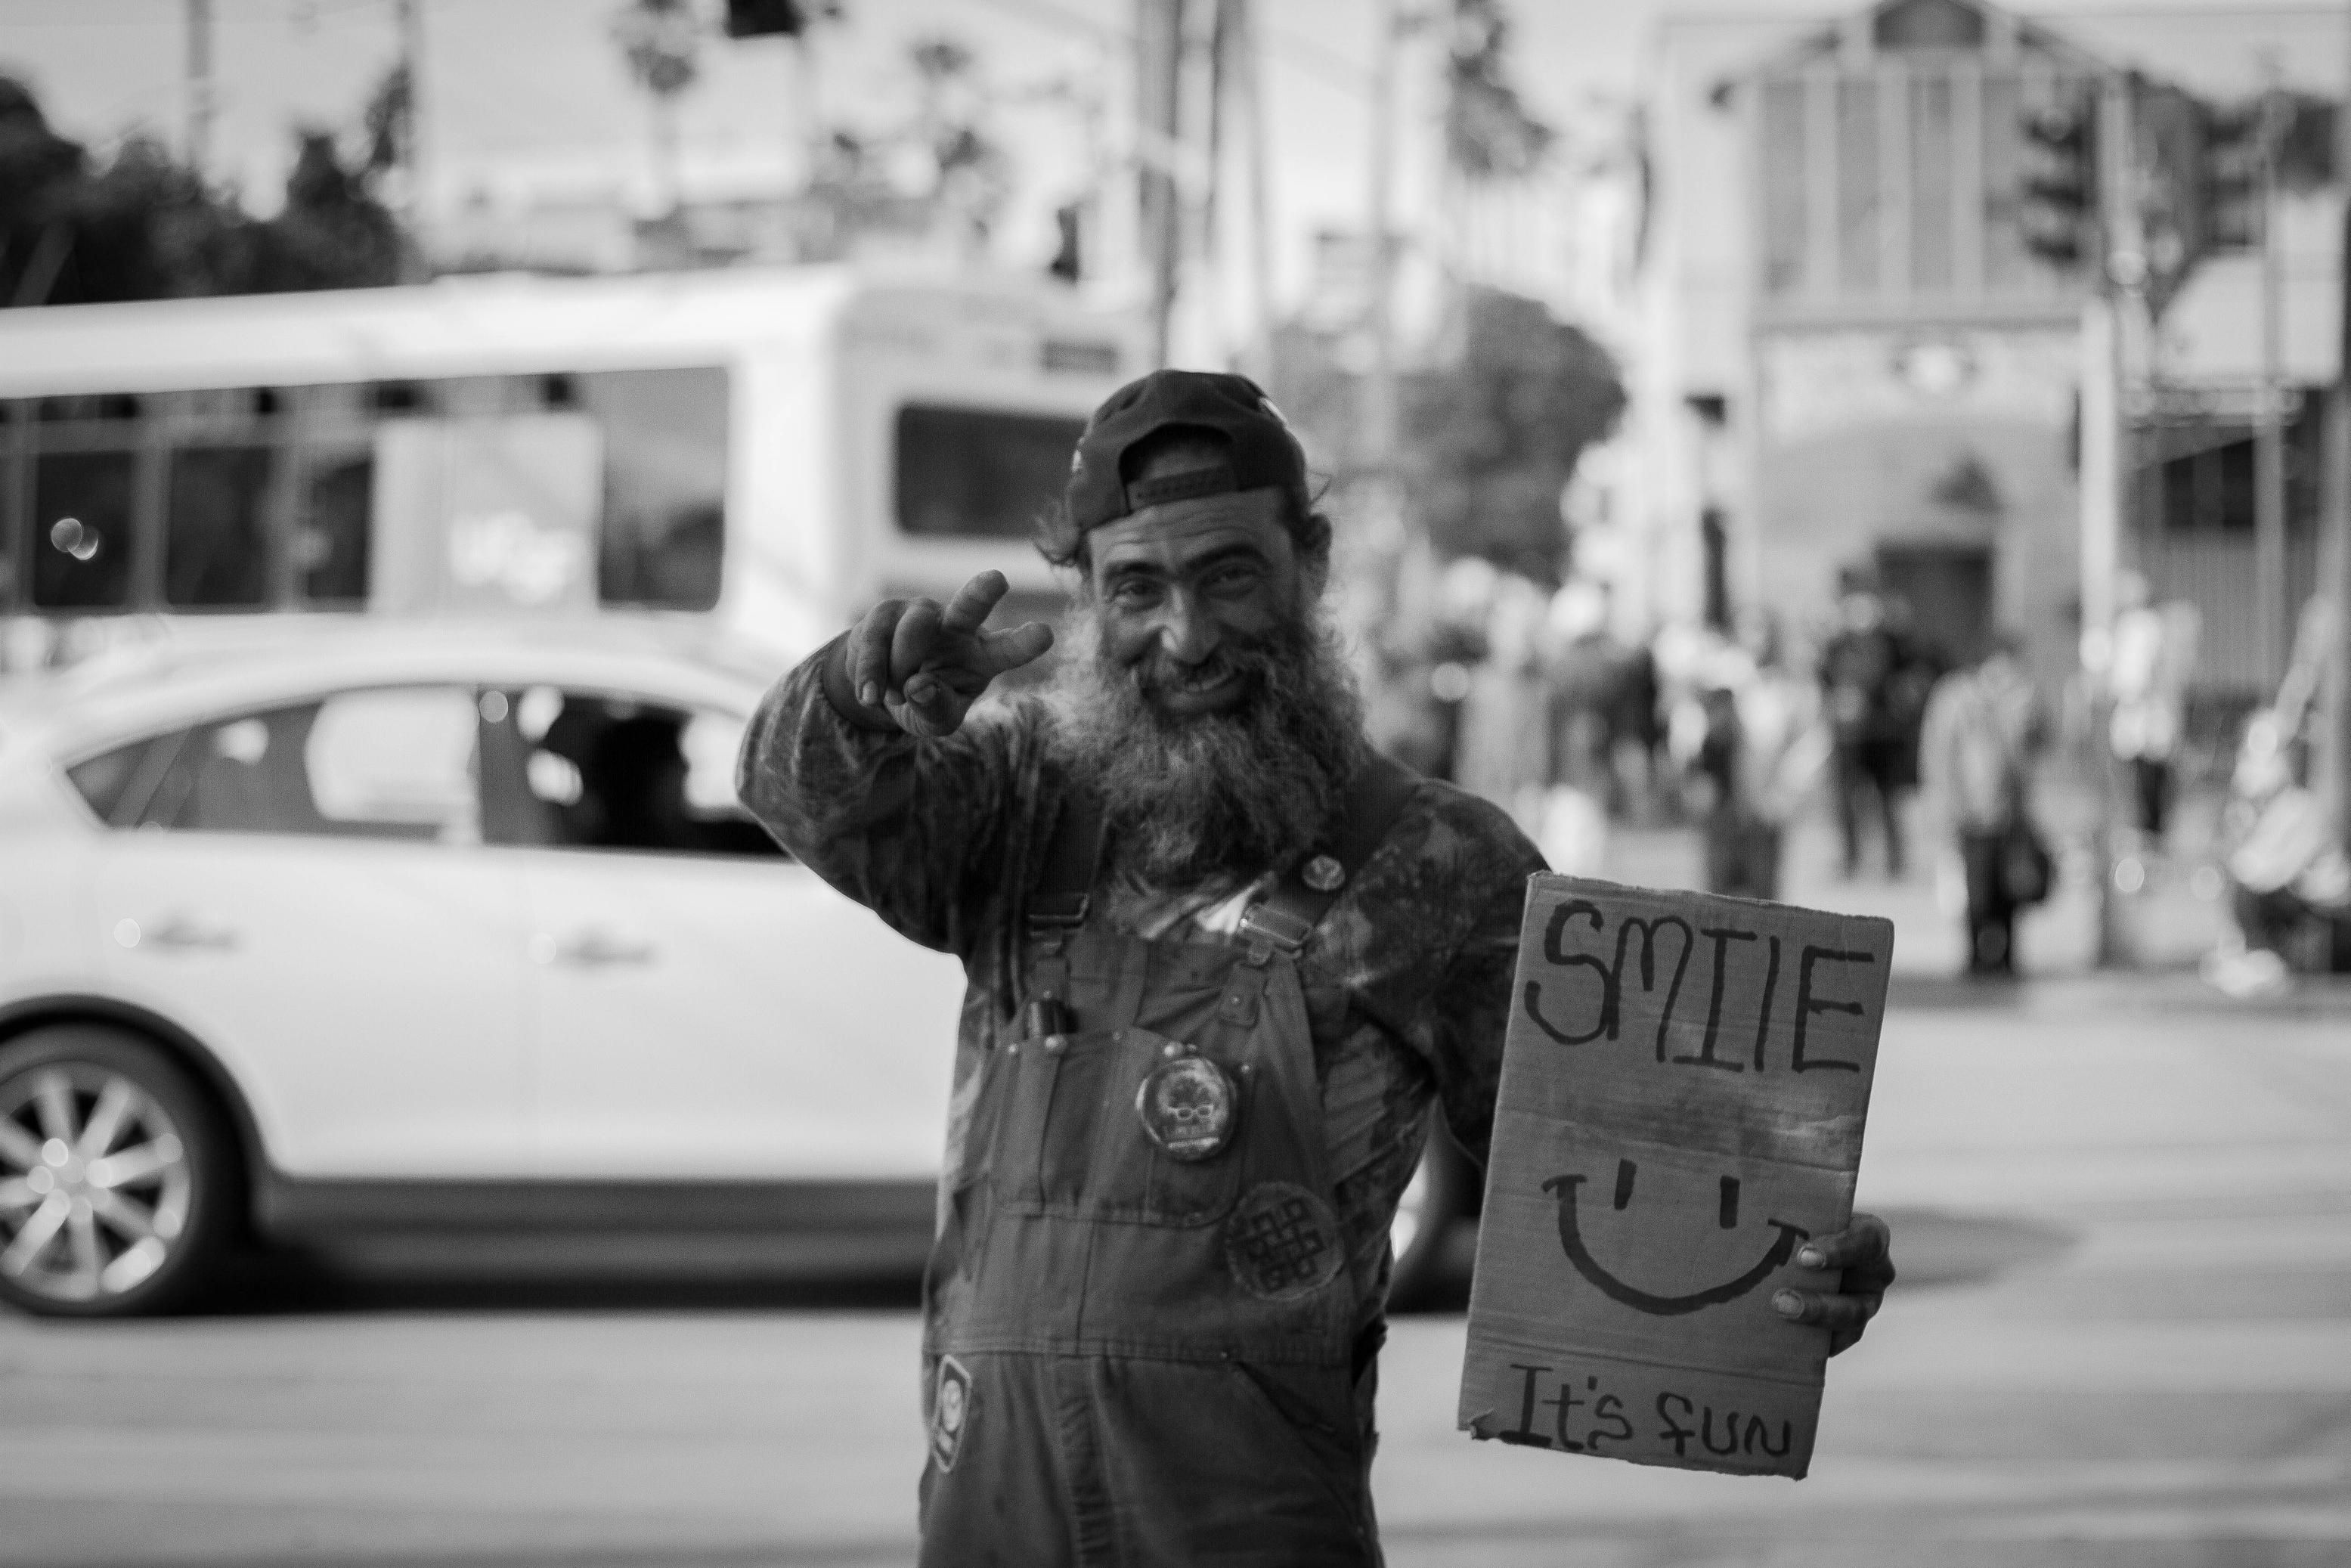 What Does It Mean To Be Content? | Homeless man, Man, Homeless